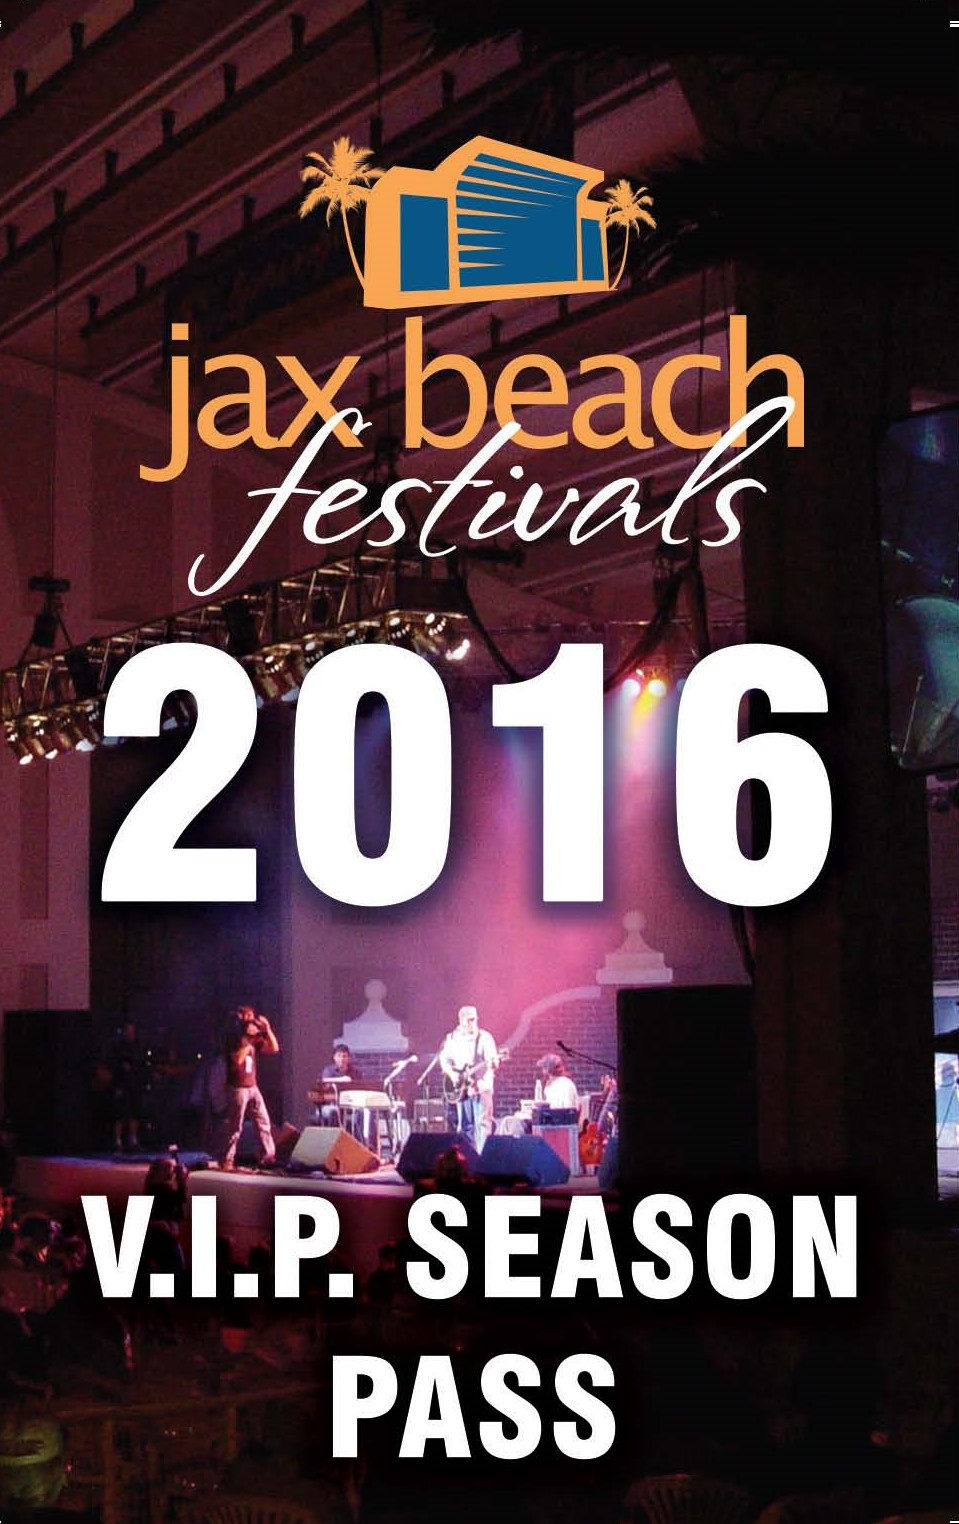 Buy your 2016 Music Festival Season Pass Now!